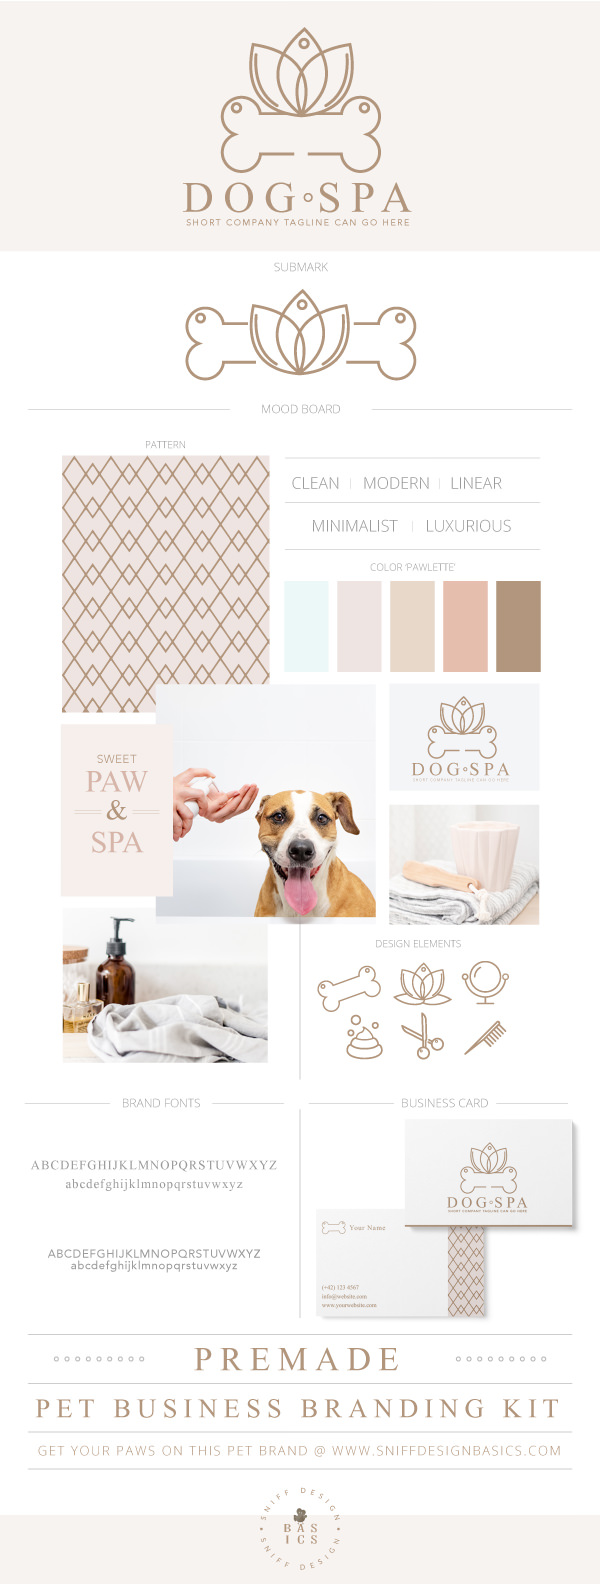 Calming-Dog-Spa-Premade-Pet-Business-Branding-Kit-by-Sniff-Design-Basics-Showcase-Image